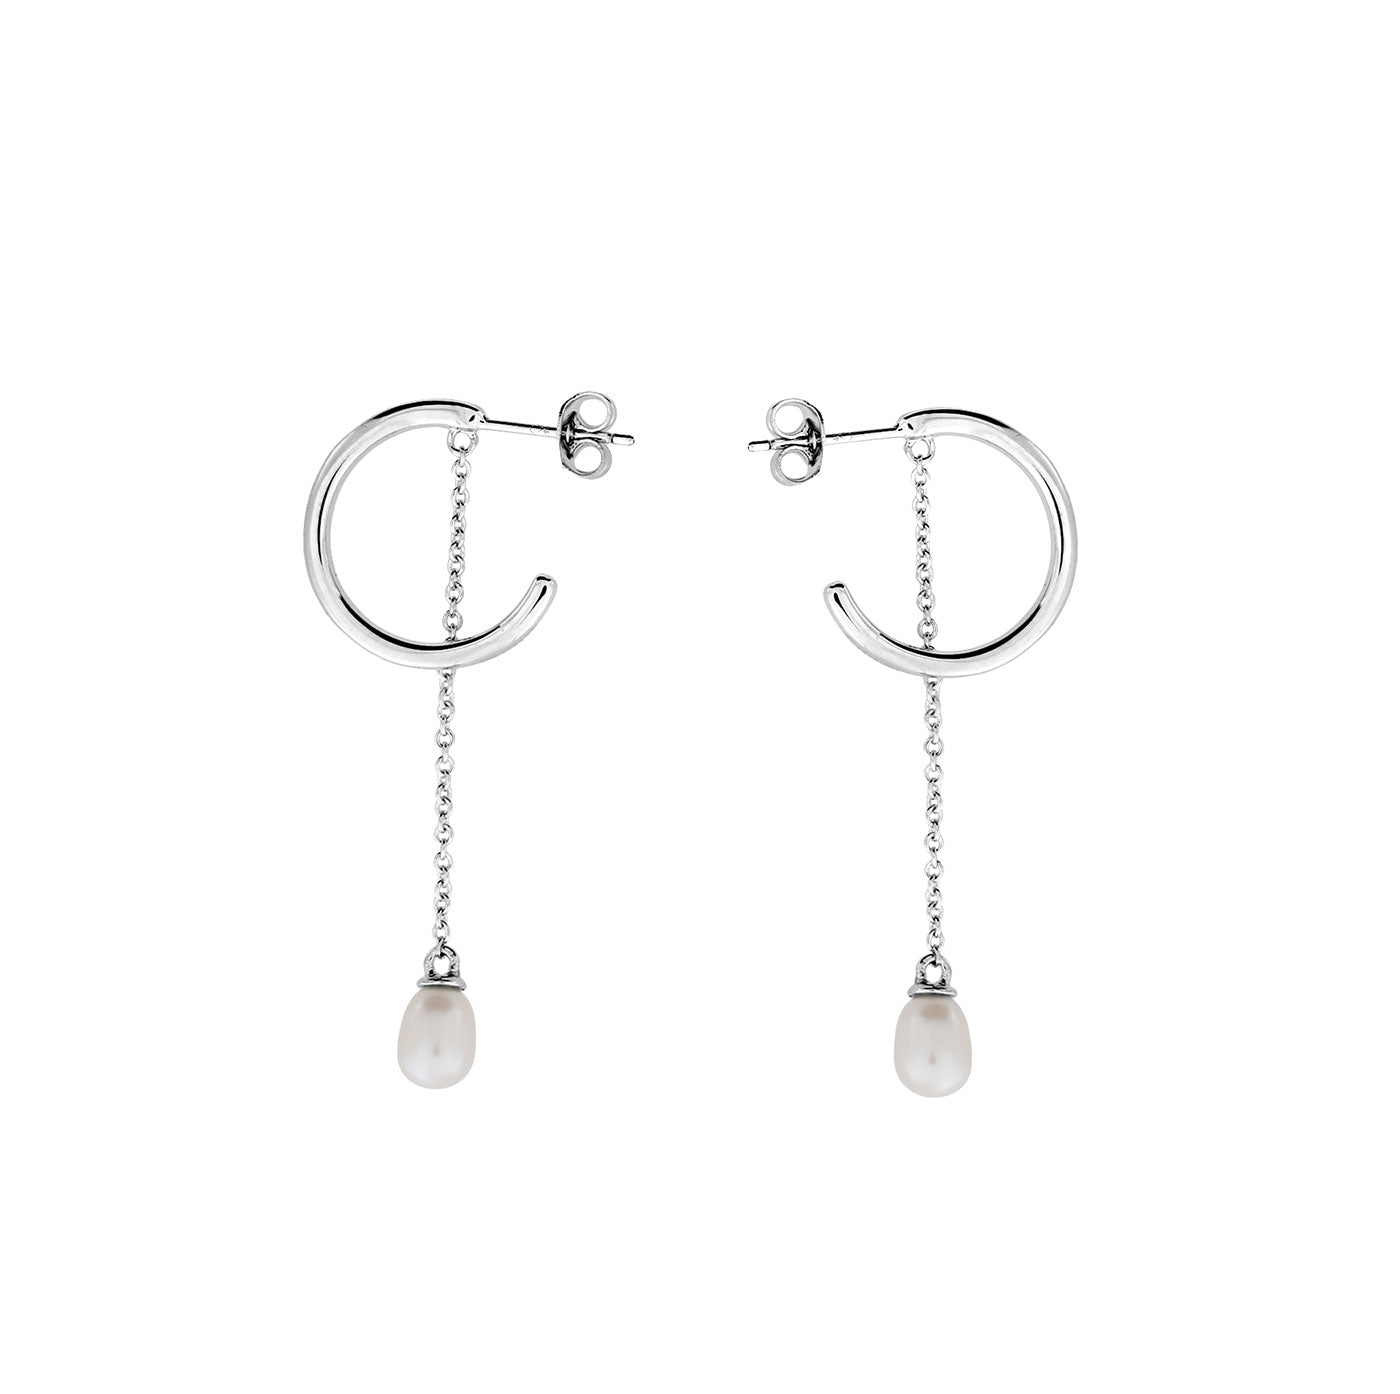 Dangling Pearl Hoop Earrings